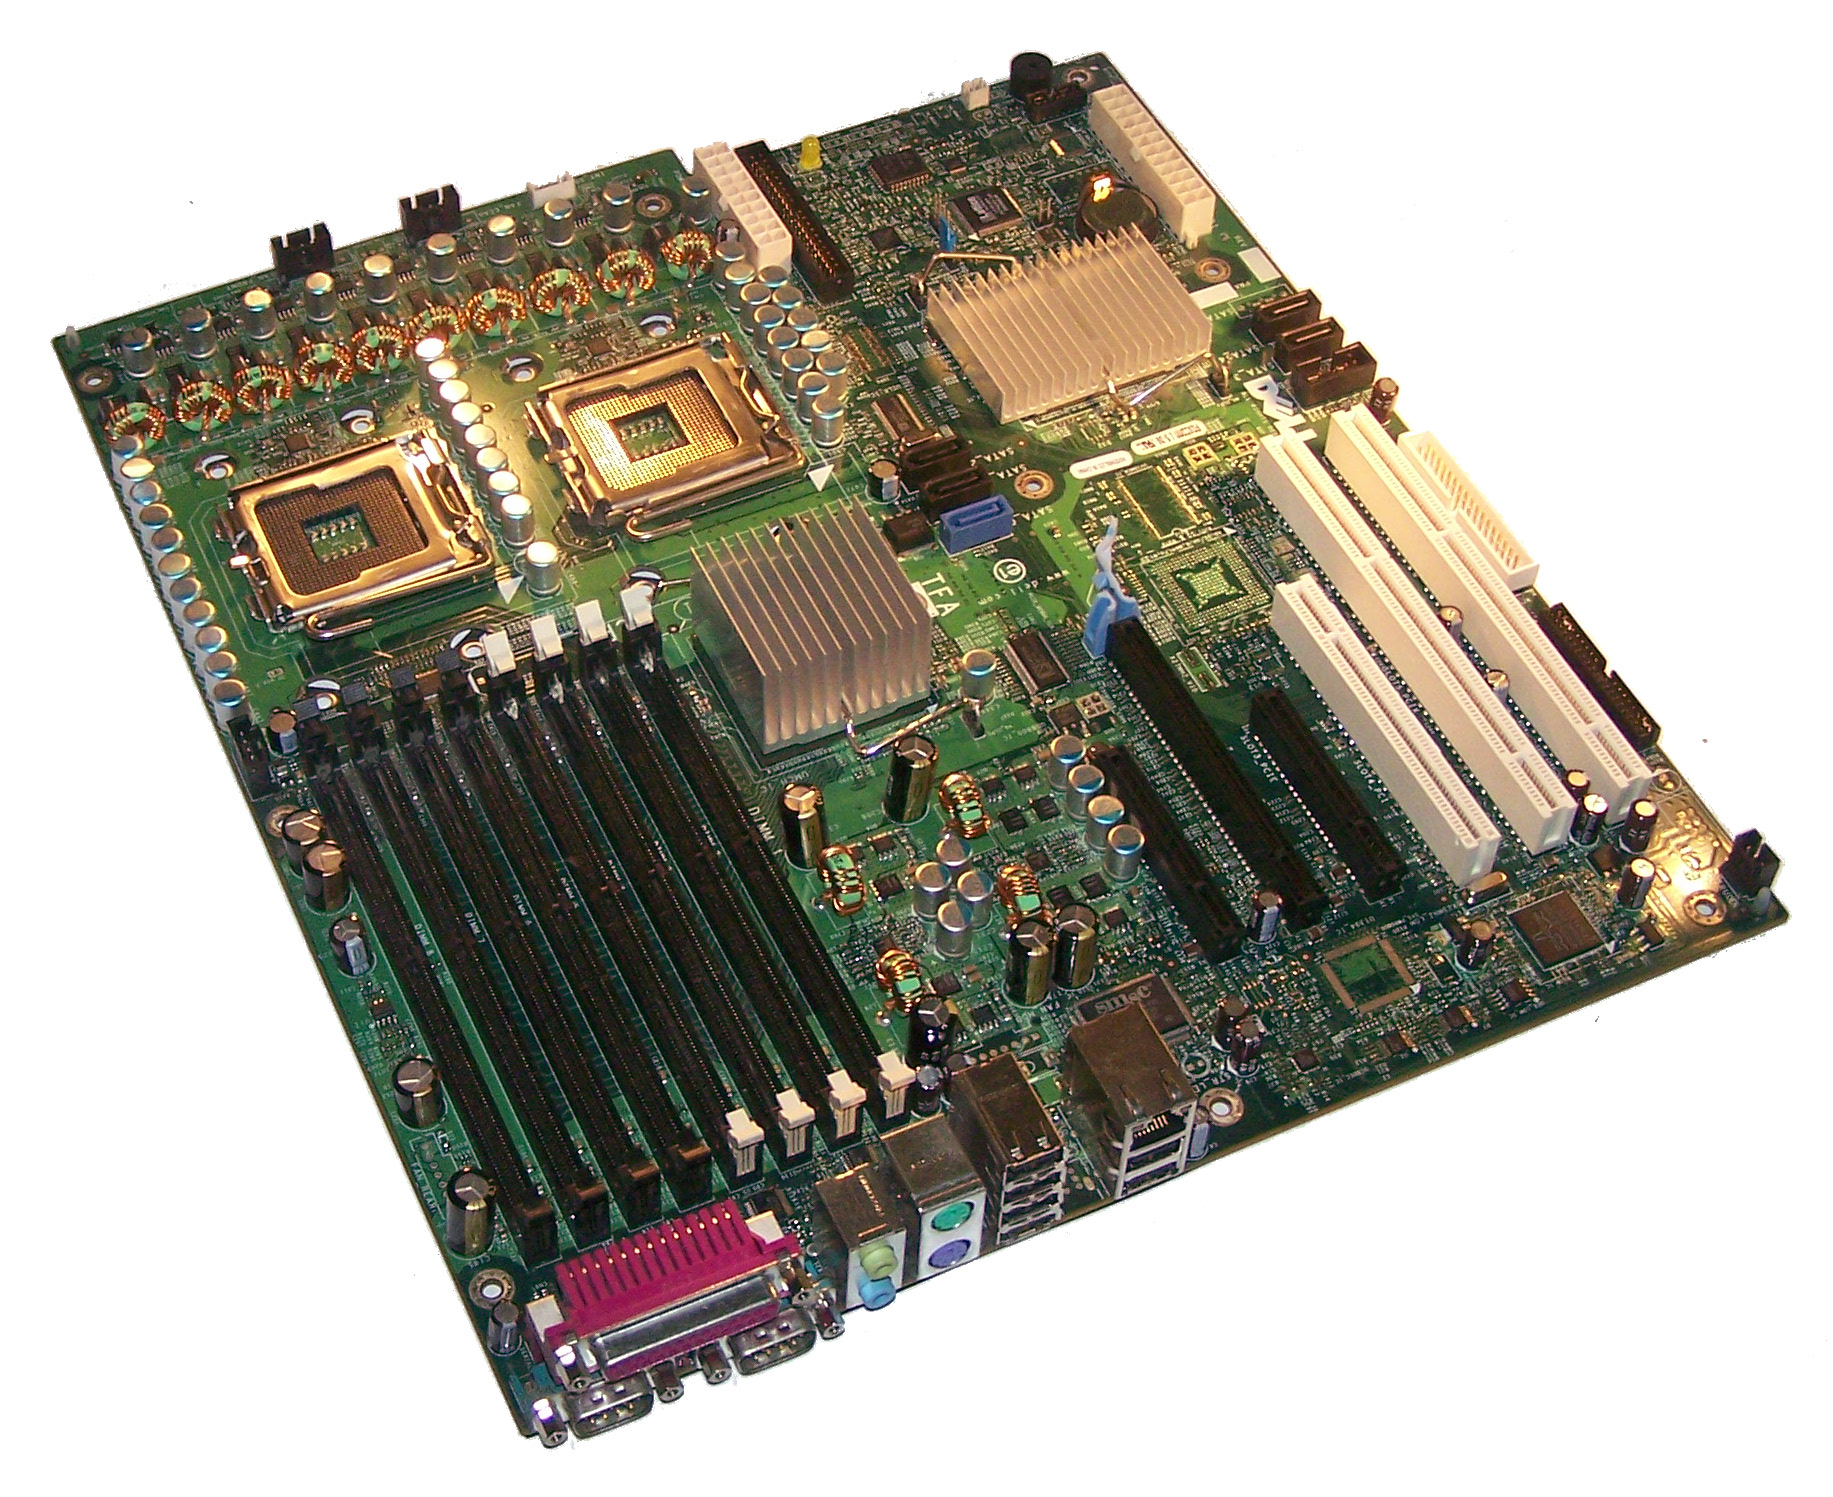 dell precision 370 motherboard manual